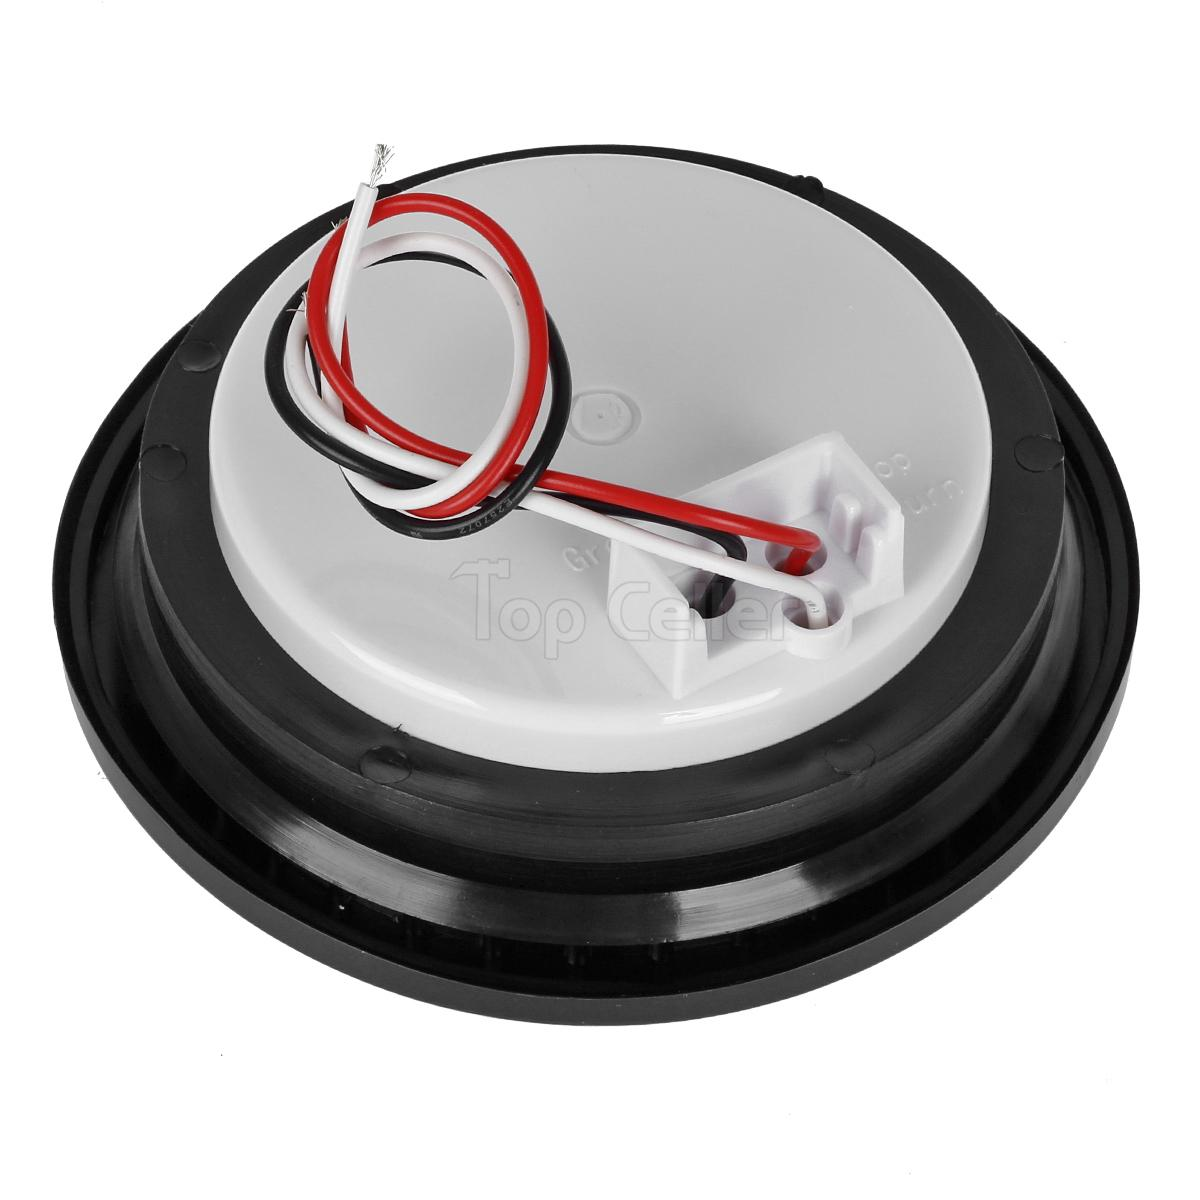 4 U0026quot  Inch Red 30 Led Round Stop  Turn  Tail Truck Light With Grommet  U0026 Wiring